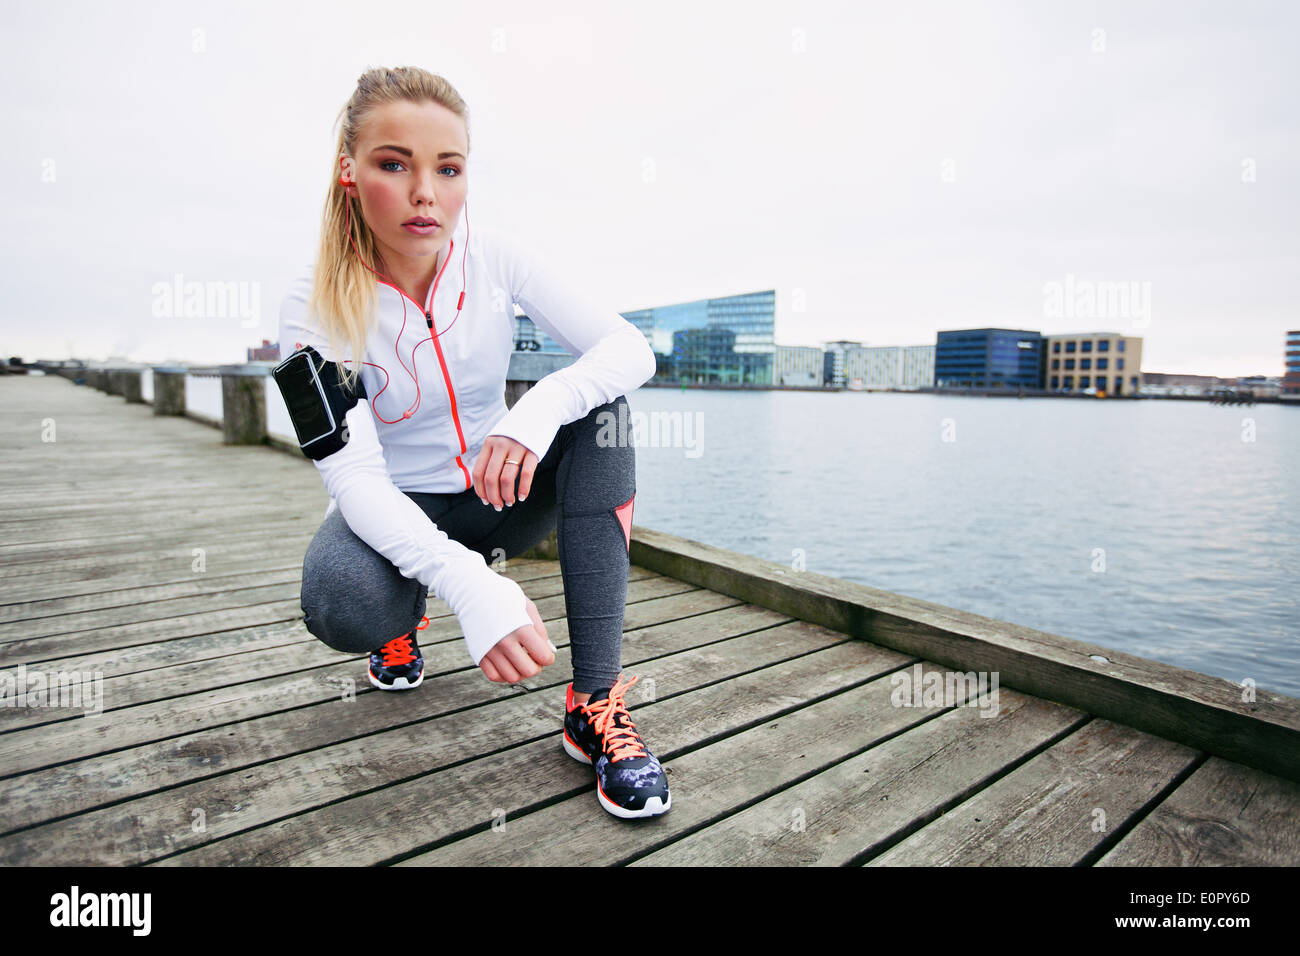 Young woman runner resting after running workout. Female fitness model crouching on sidewalk along river. Female jogger resting. - Stock Image